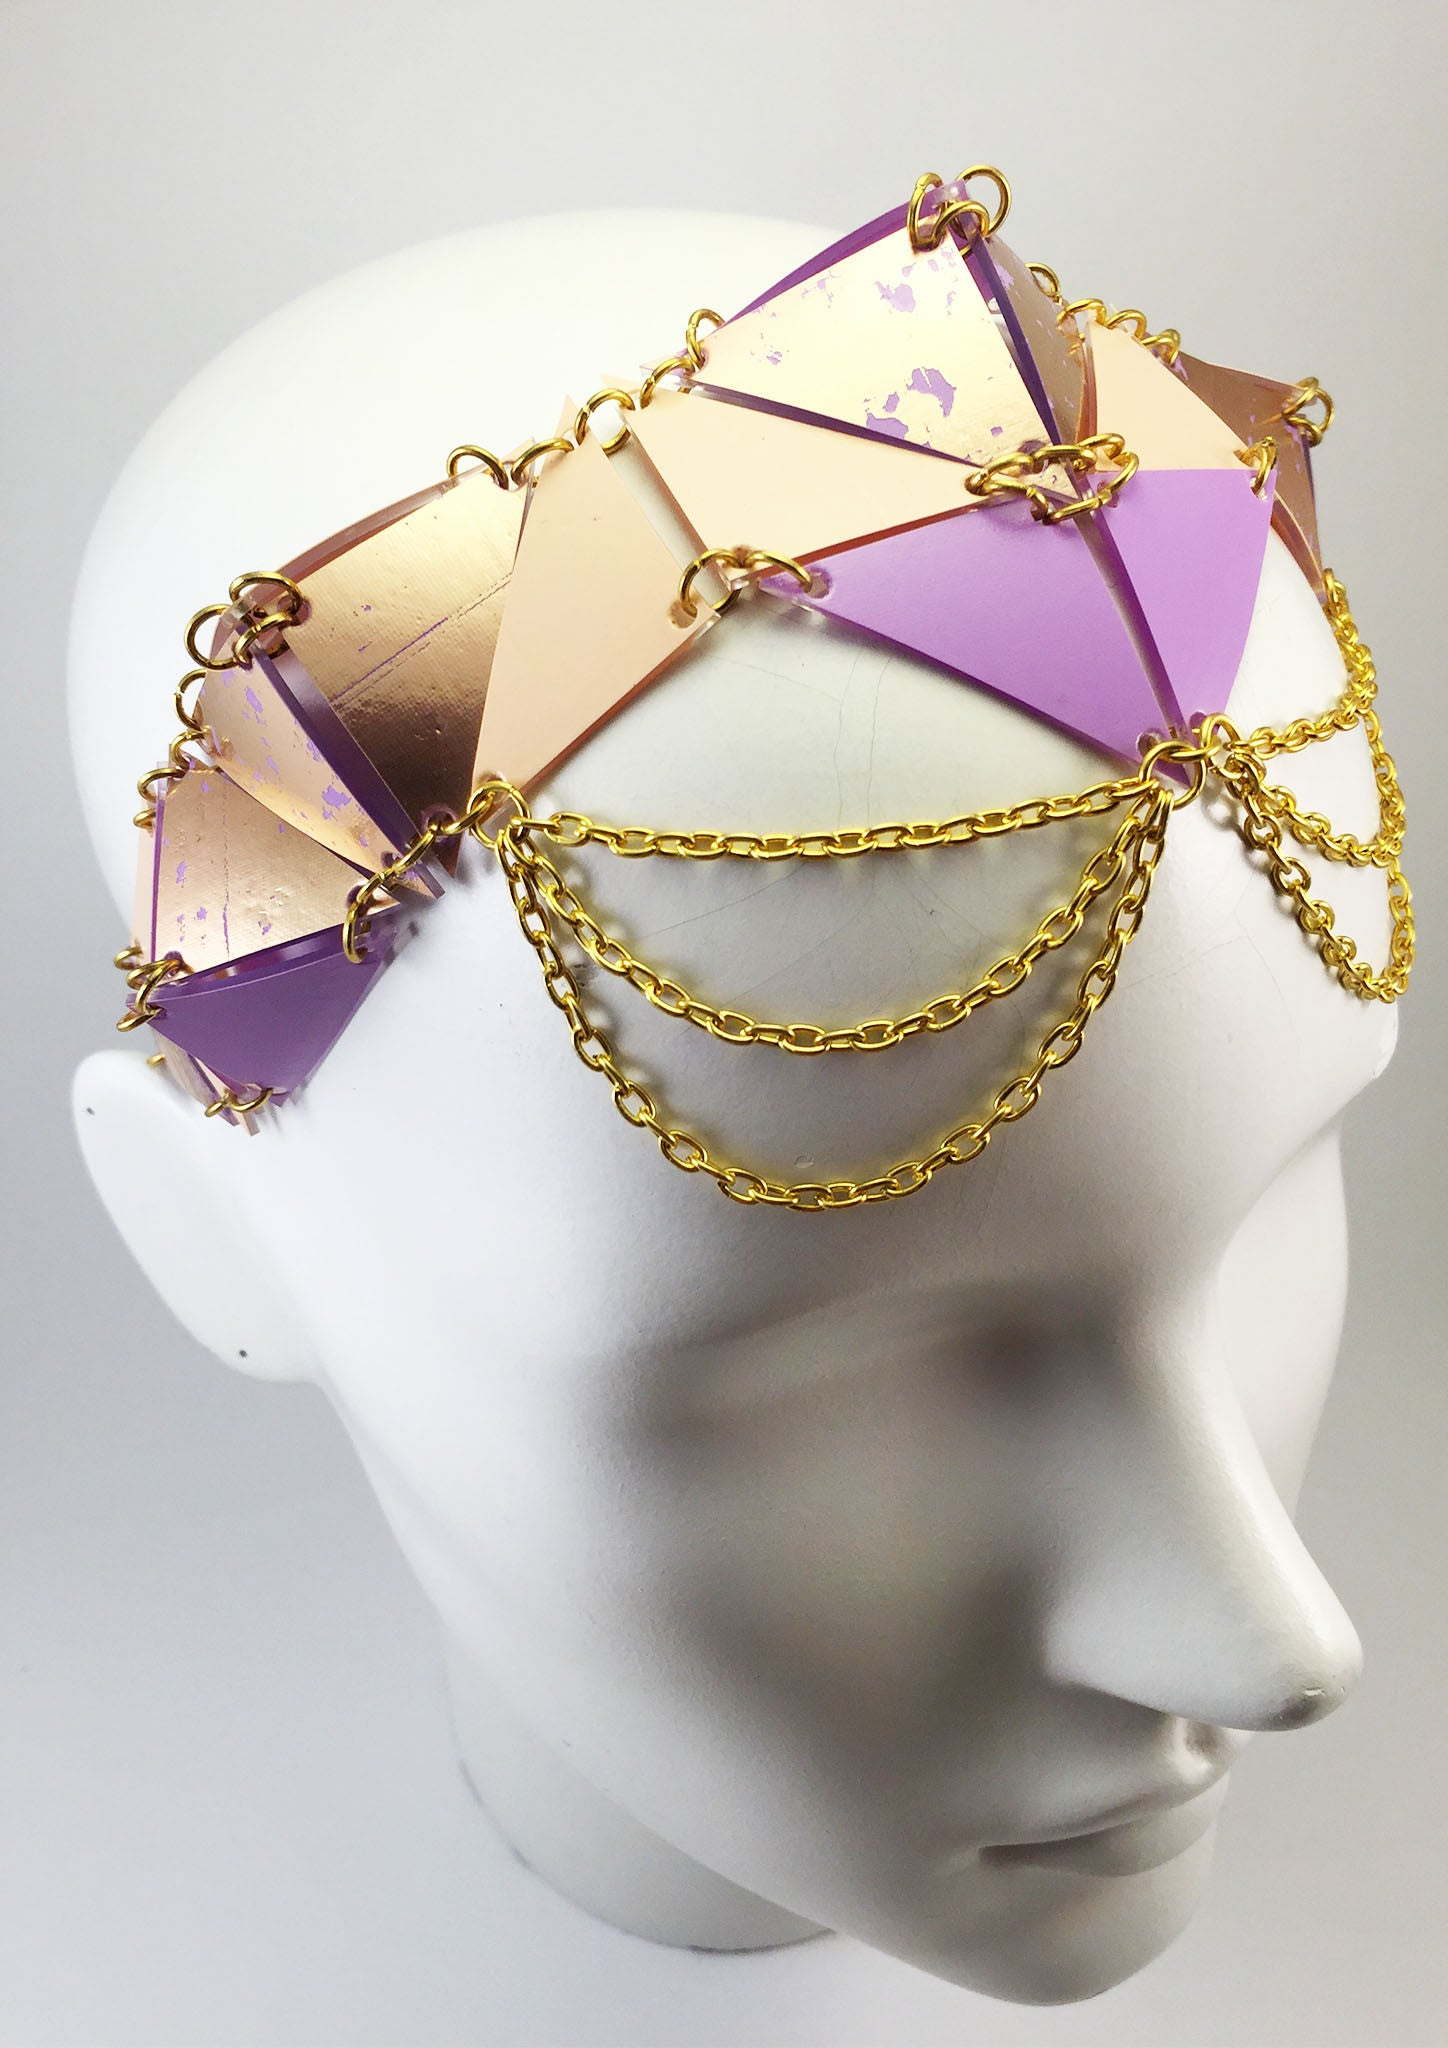 MEDIUM HEADPIECE